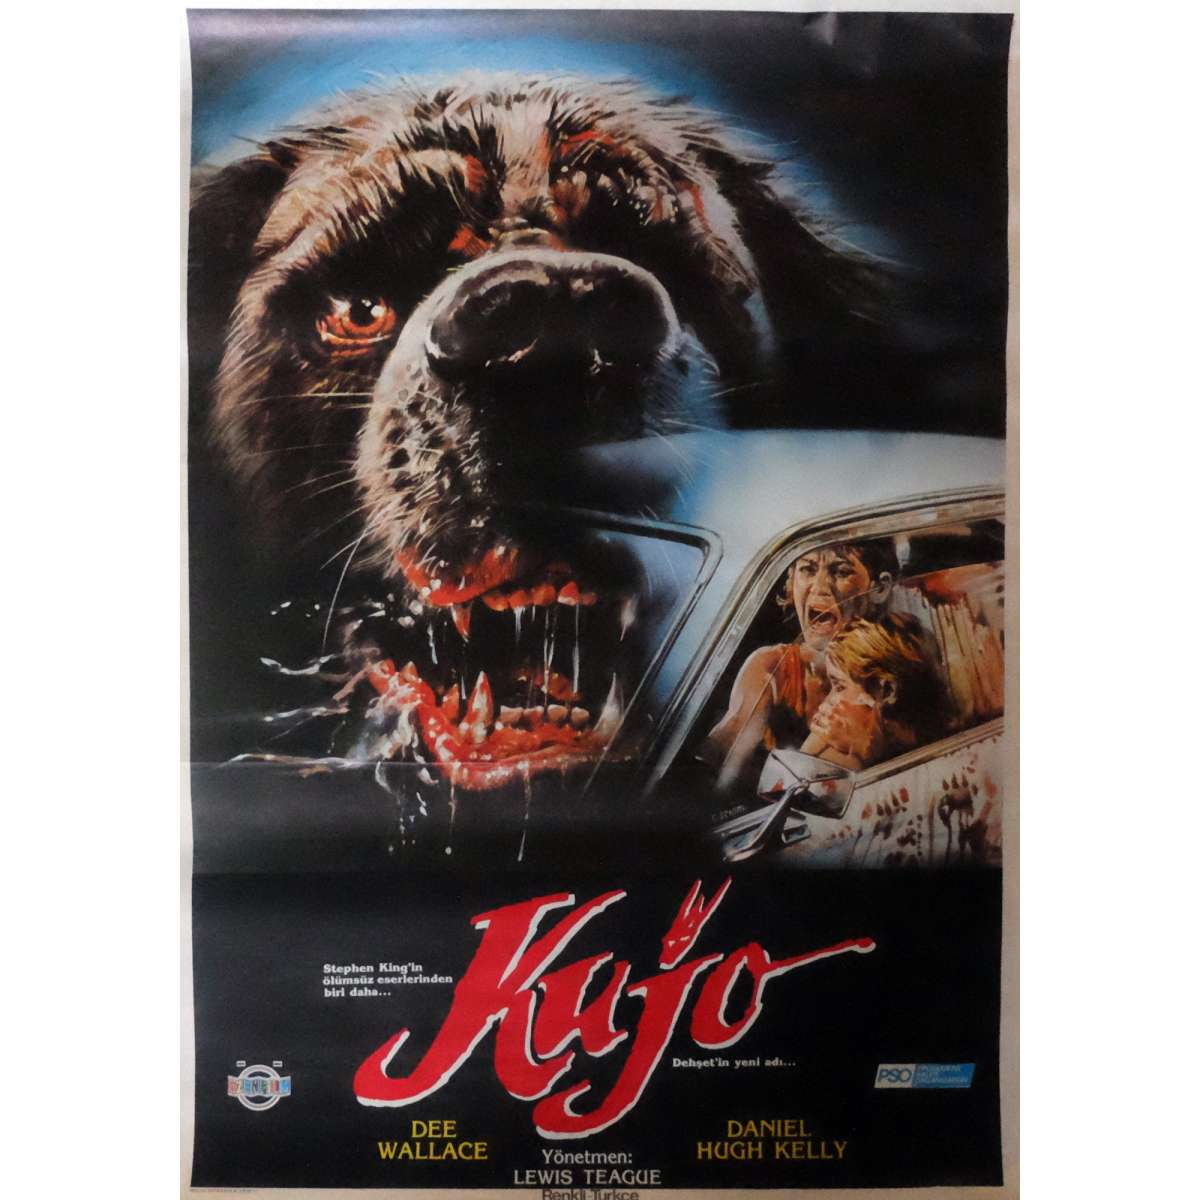 Cujo movie poster